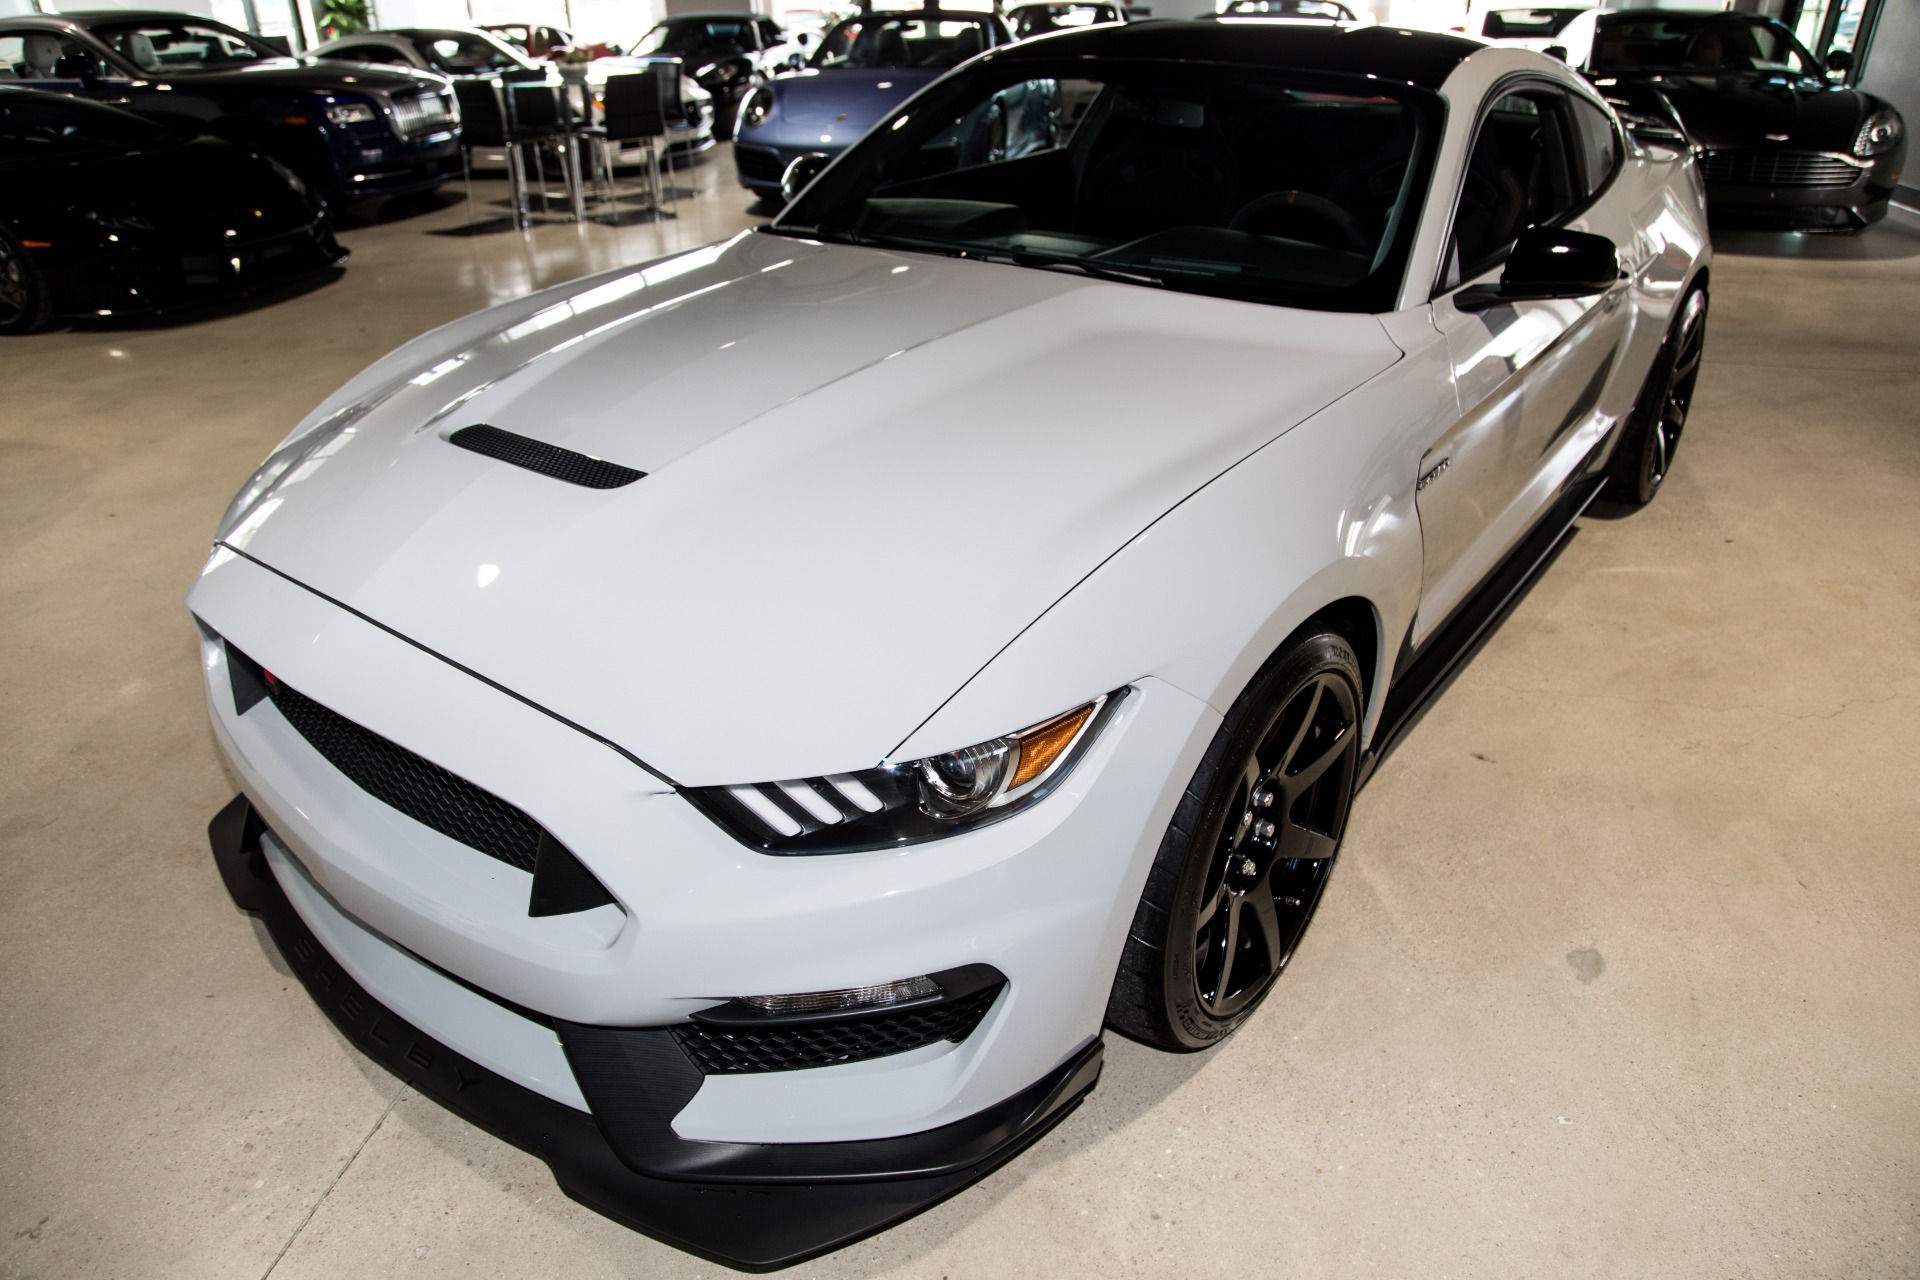 Used 2016 Ford Mustang Shelby GT350R For Sale ($62,900) | Marino Performance Motors Stock #524754